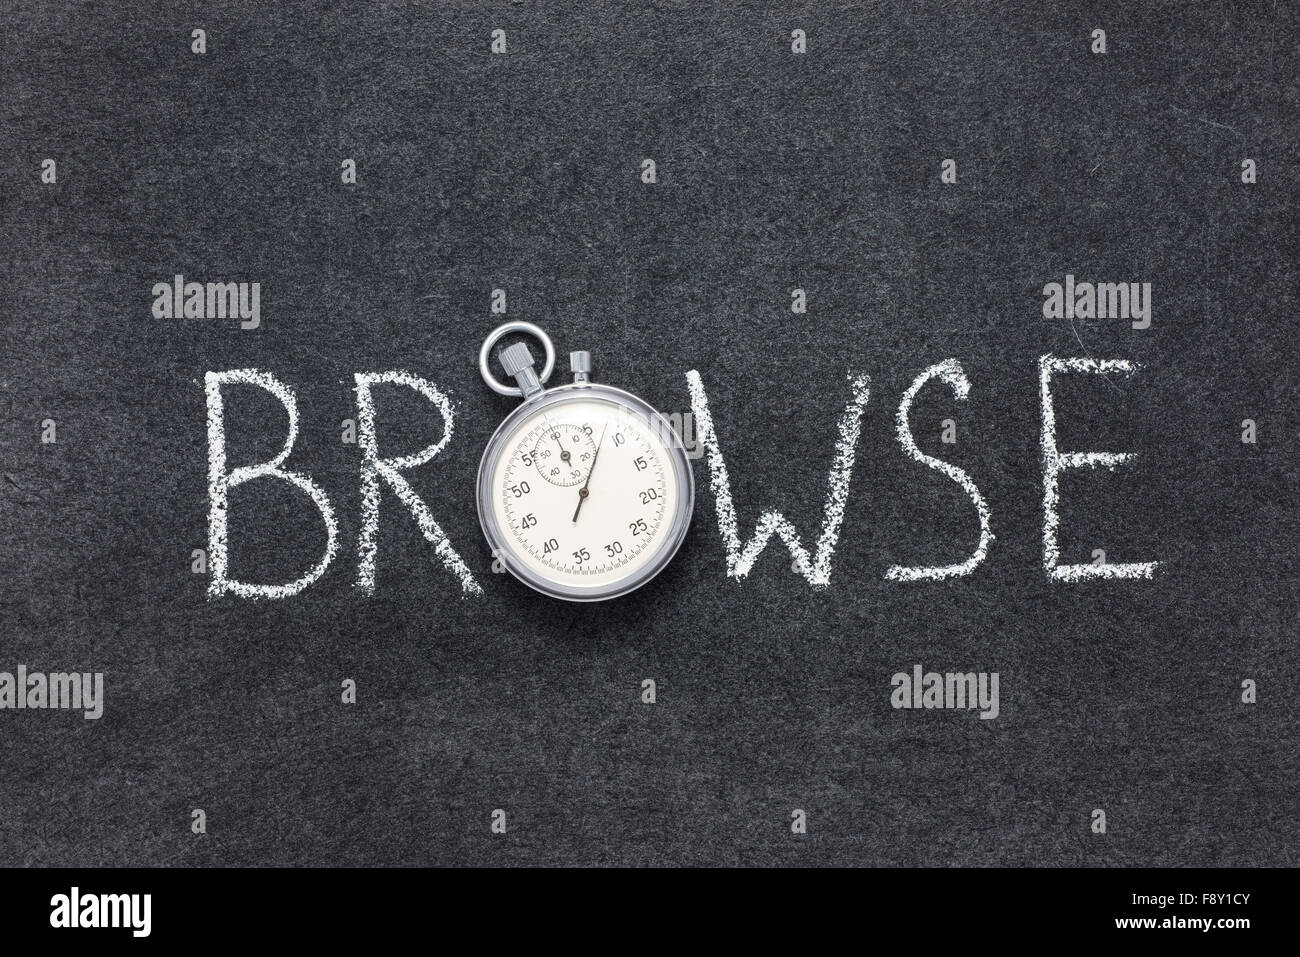 browse word handwritten on chalkboard with vintage precise stopwatch used instead of O - Stock Image